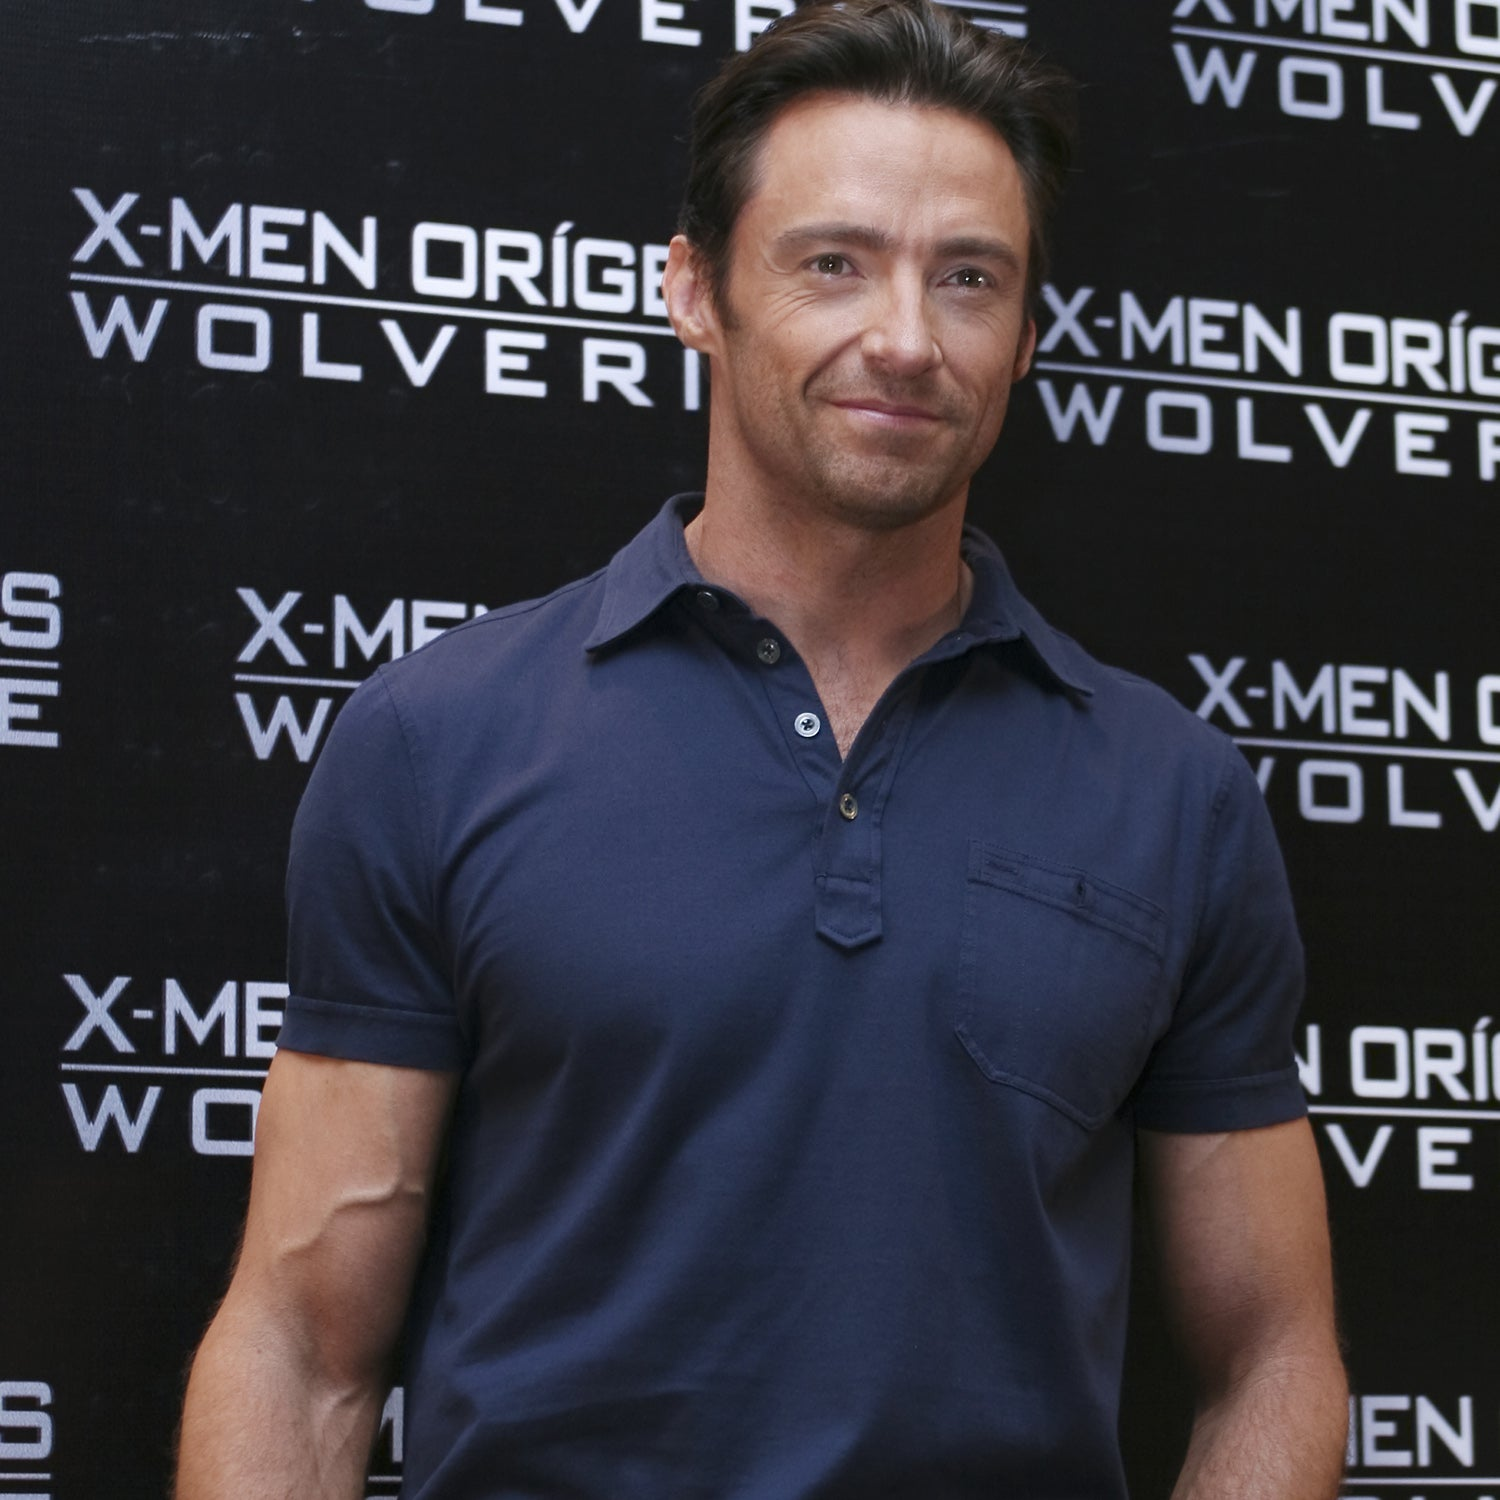 Hugh Jackman's Wolverine Diet & Workout Plan